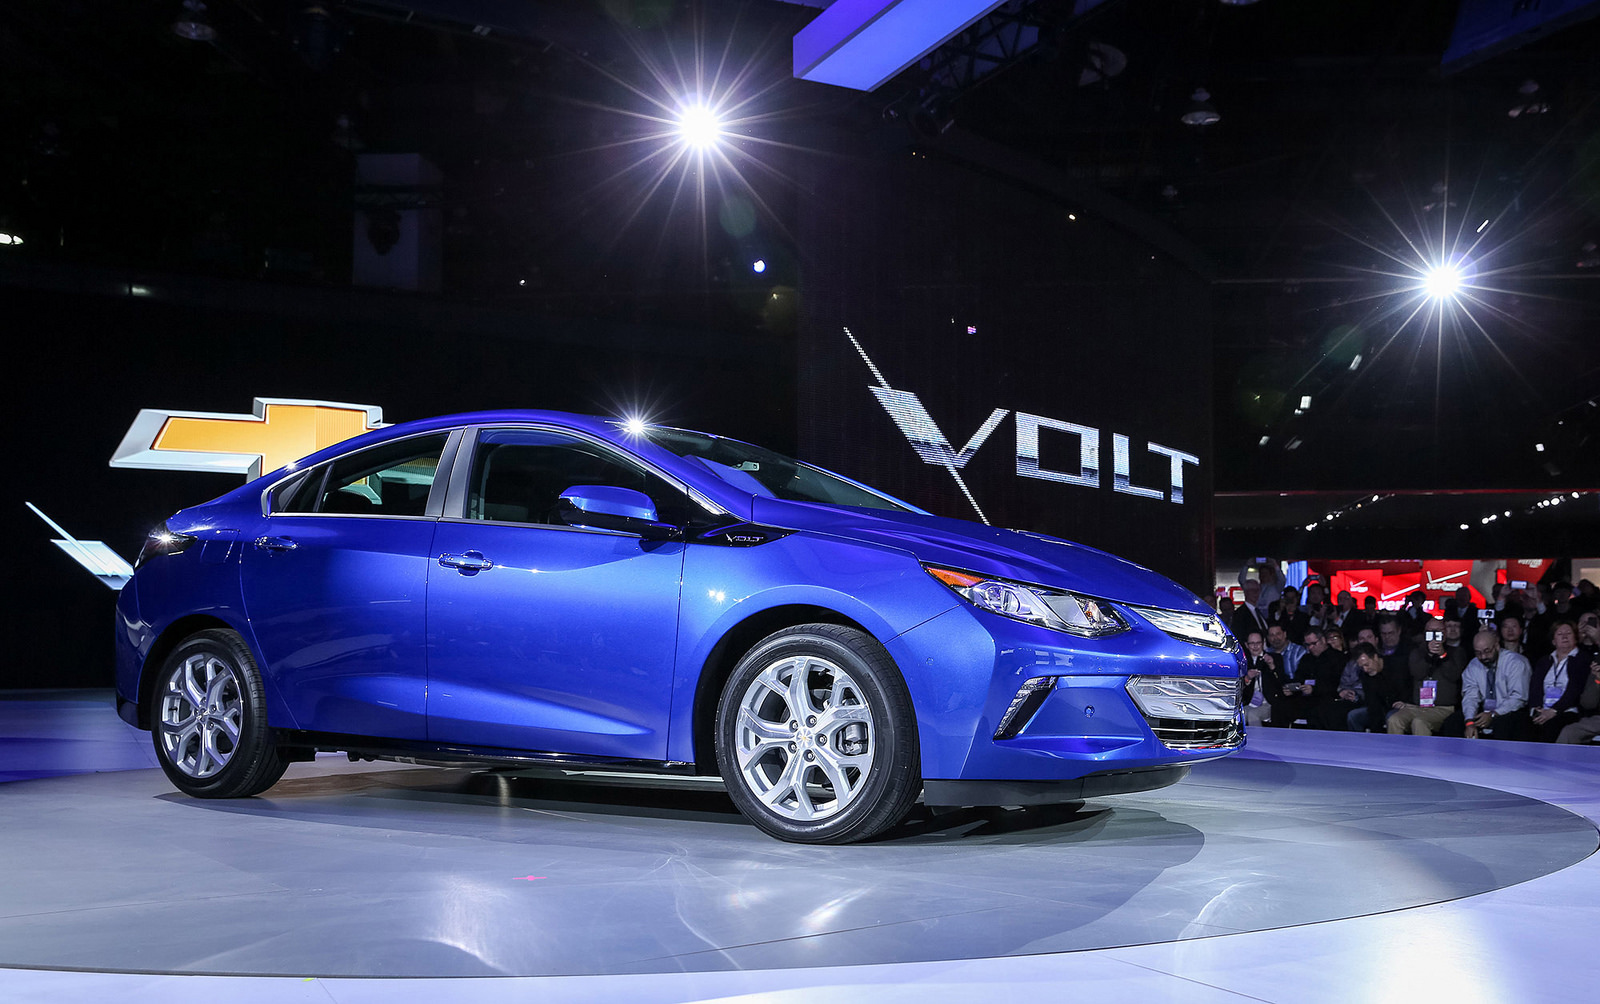 Details Emerge of 2017 Chevy Volt - The News Wheel